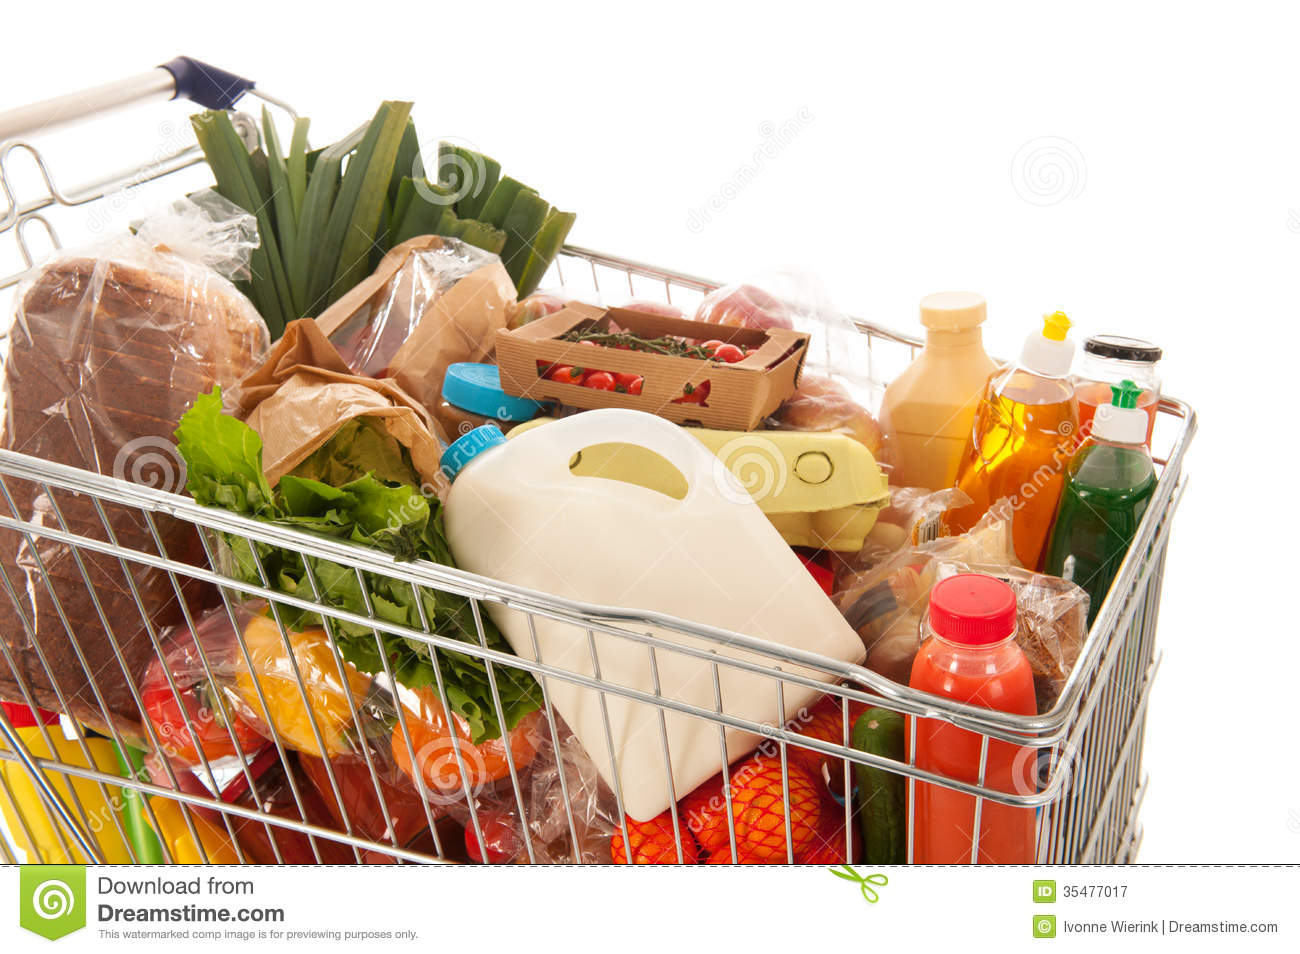 Free Printable Grocery Coupons: Over 1, Coupons at muktadirsdiary.ml - LOZO.